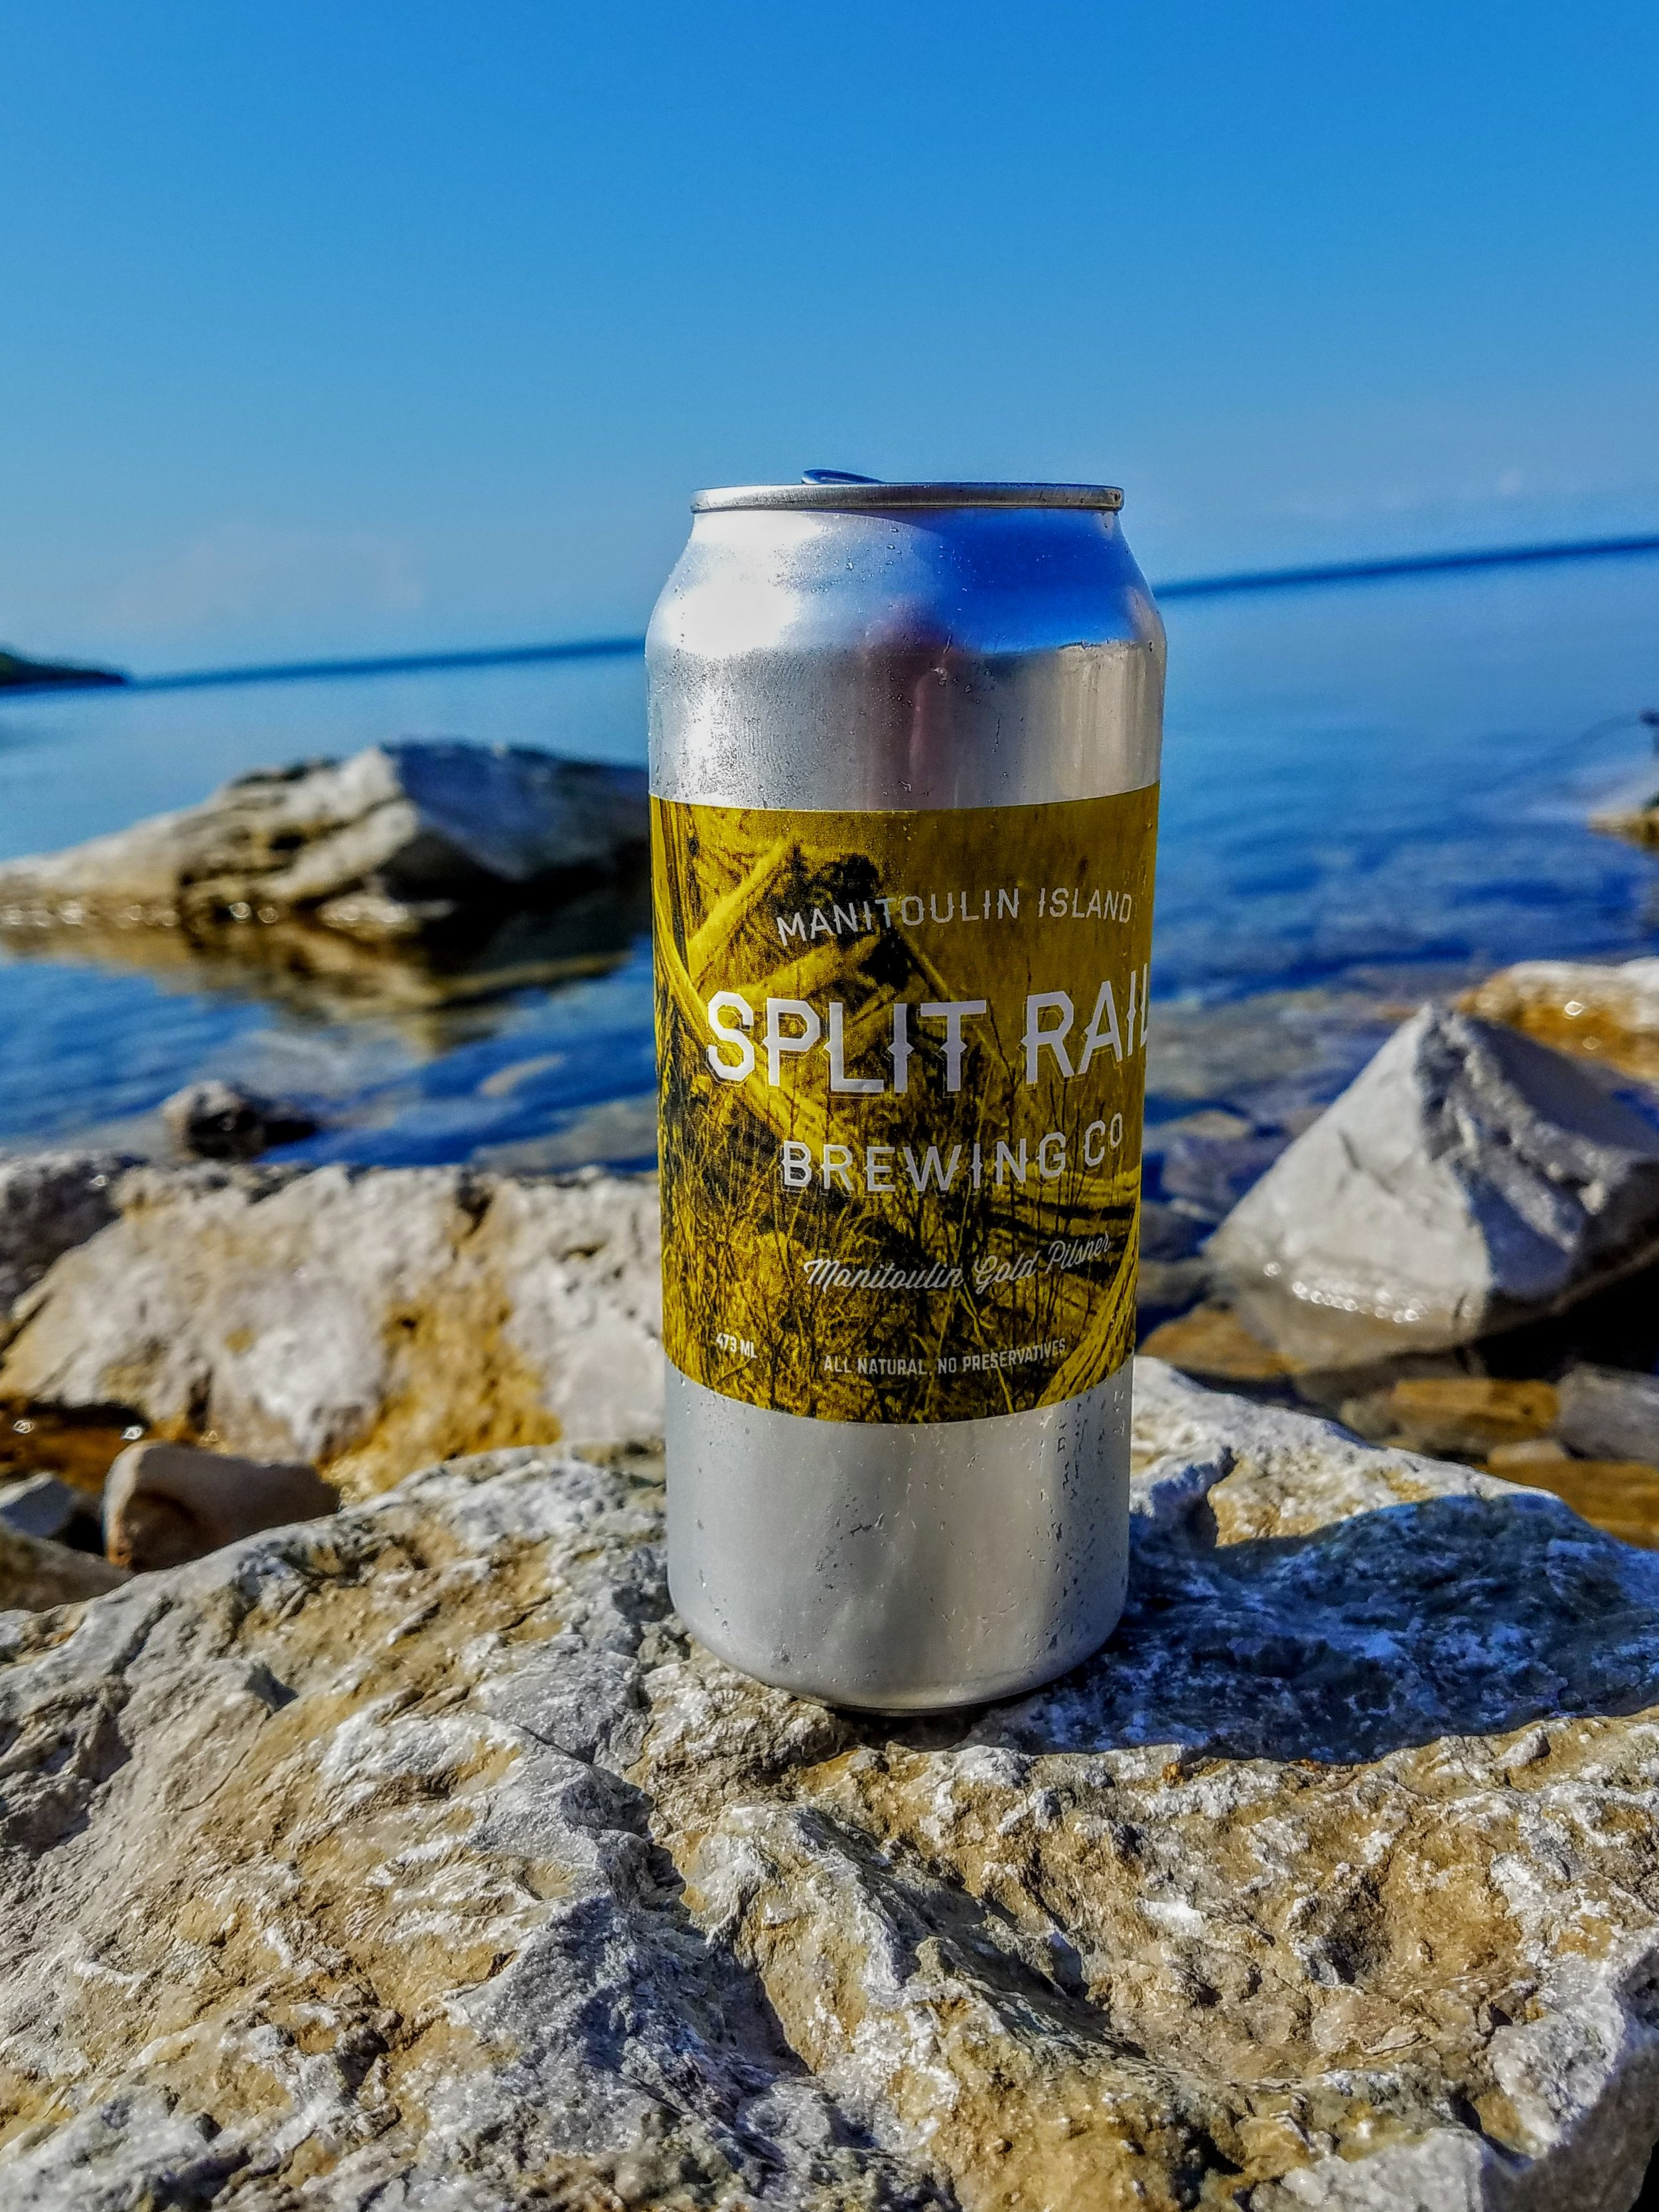 Split Rail brewing was started by Andrea and Eleanor in a garage on Manitoulin Island in 2010. Manitoulin is the largest freshwater island in the world. The brewery opened in Gore Bay in 2015. We enjoy a frosty Copper Lager by the water.